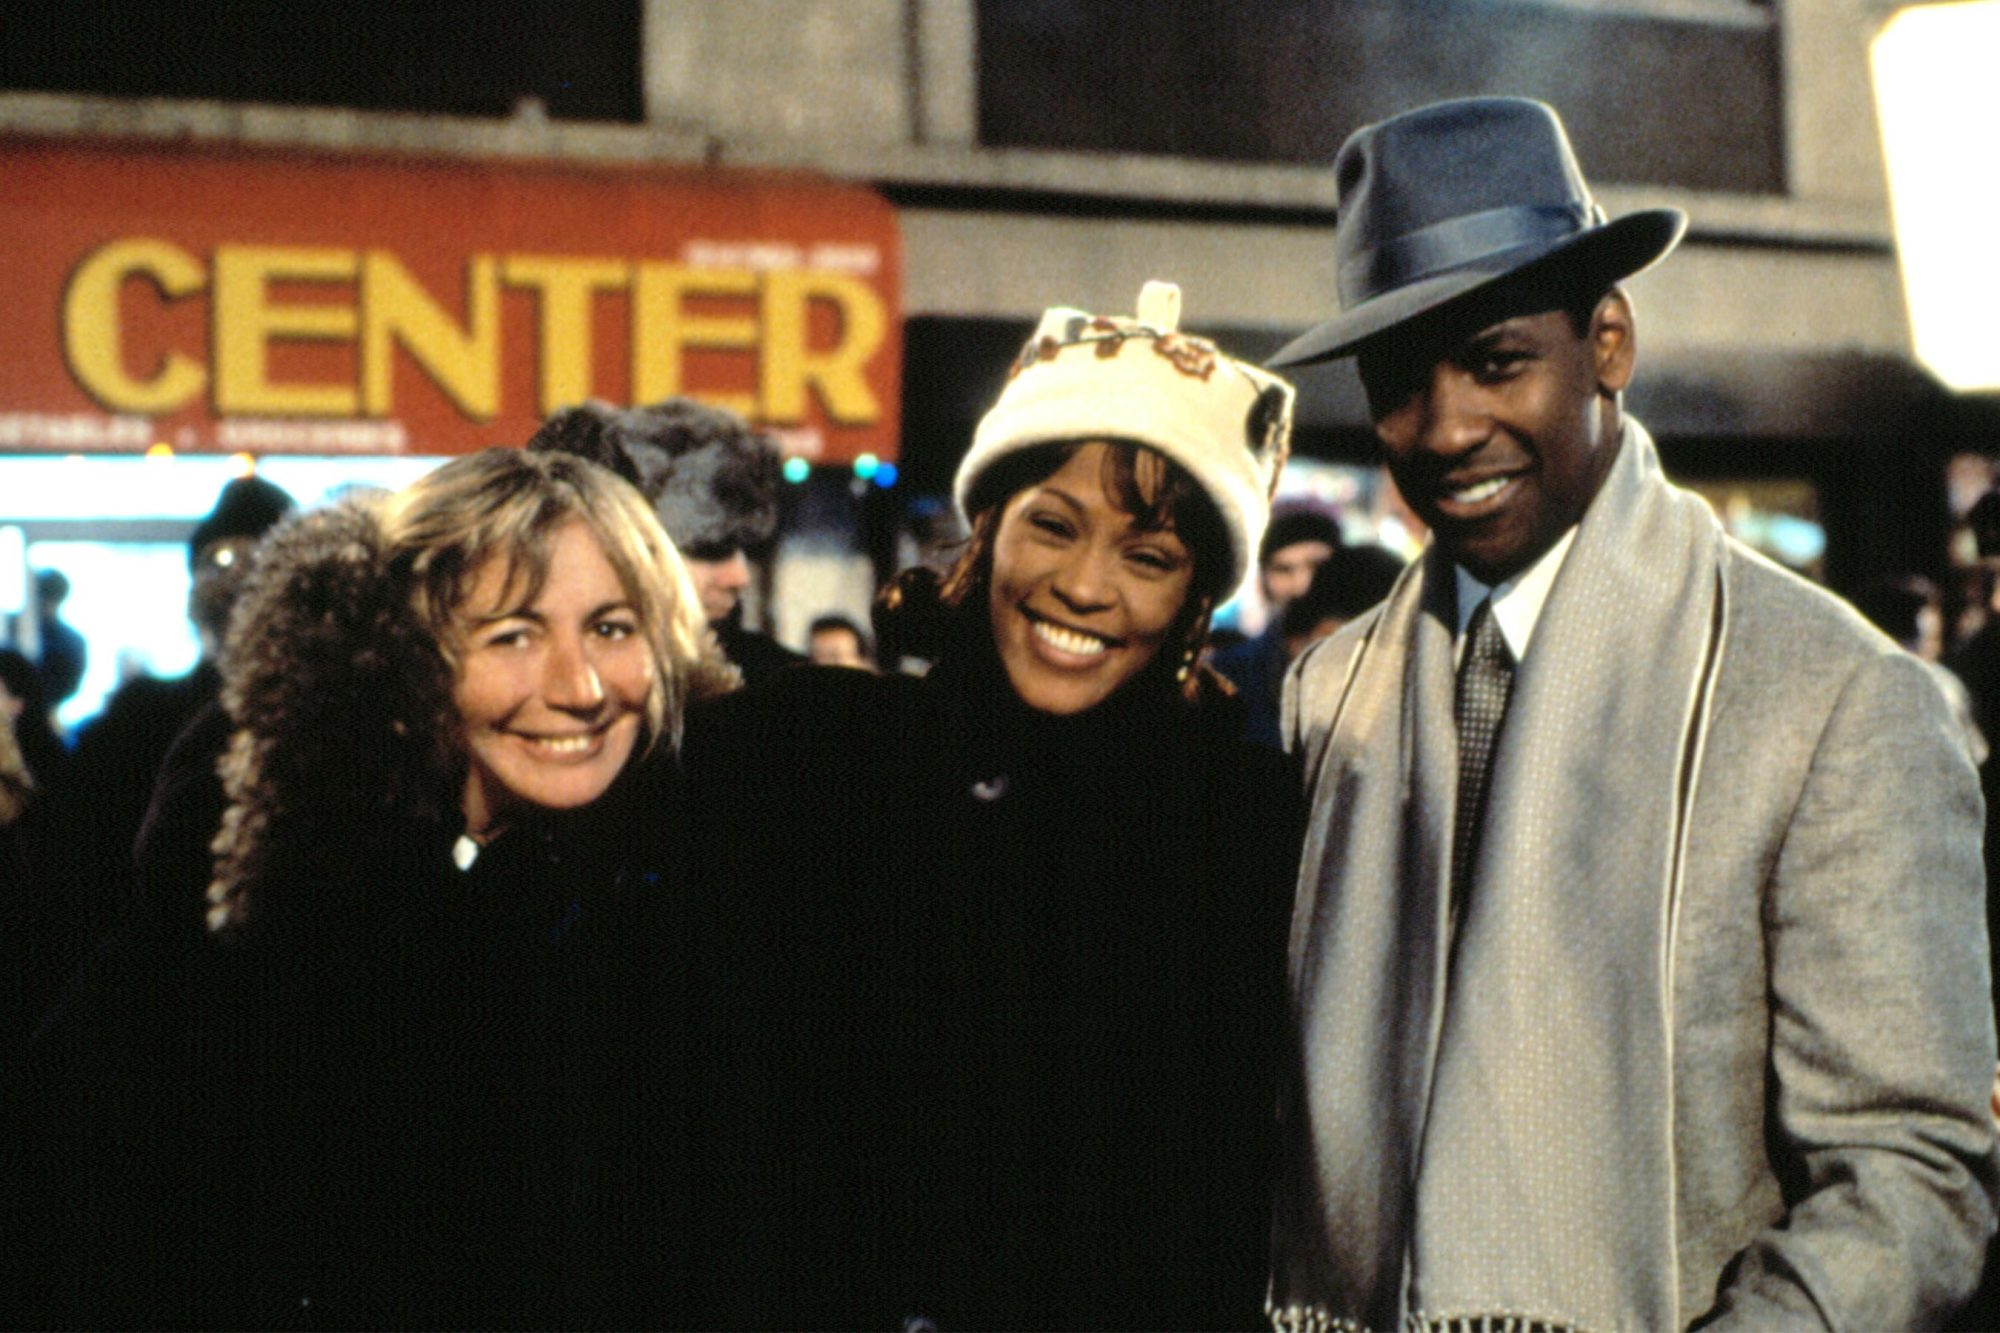 THE PREACHER'S WIFE, Director Penny Marshall, Whitney Houston, Denzel Washington on the set, 1996. (